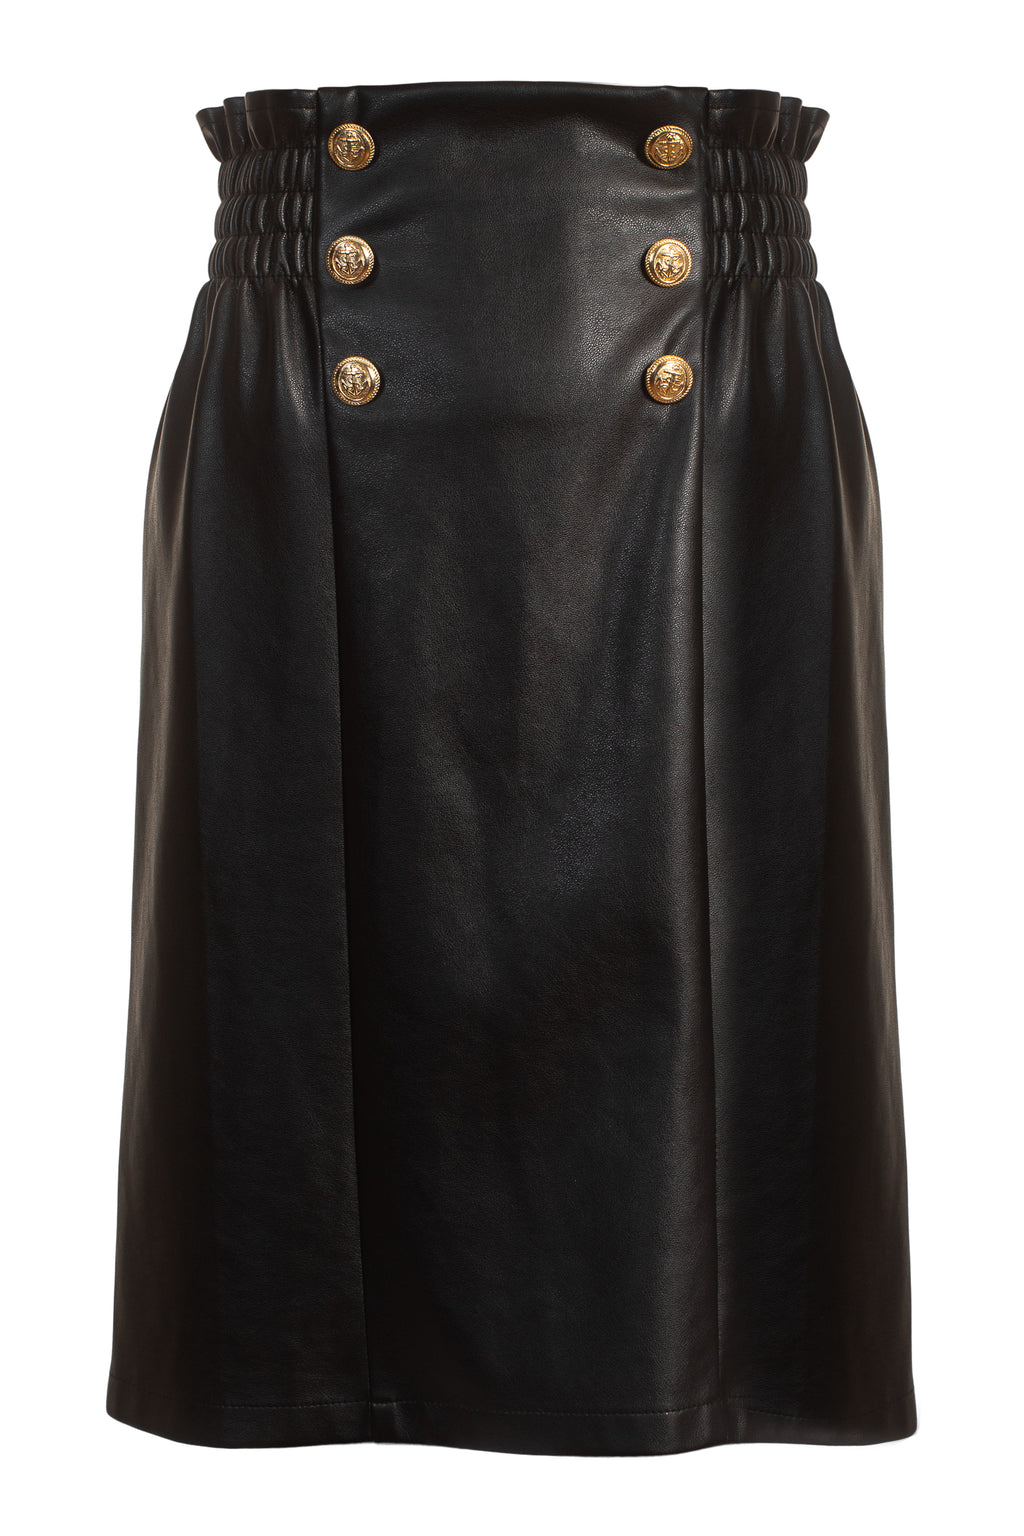 Keeley Skirt Vegan leather Black